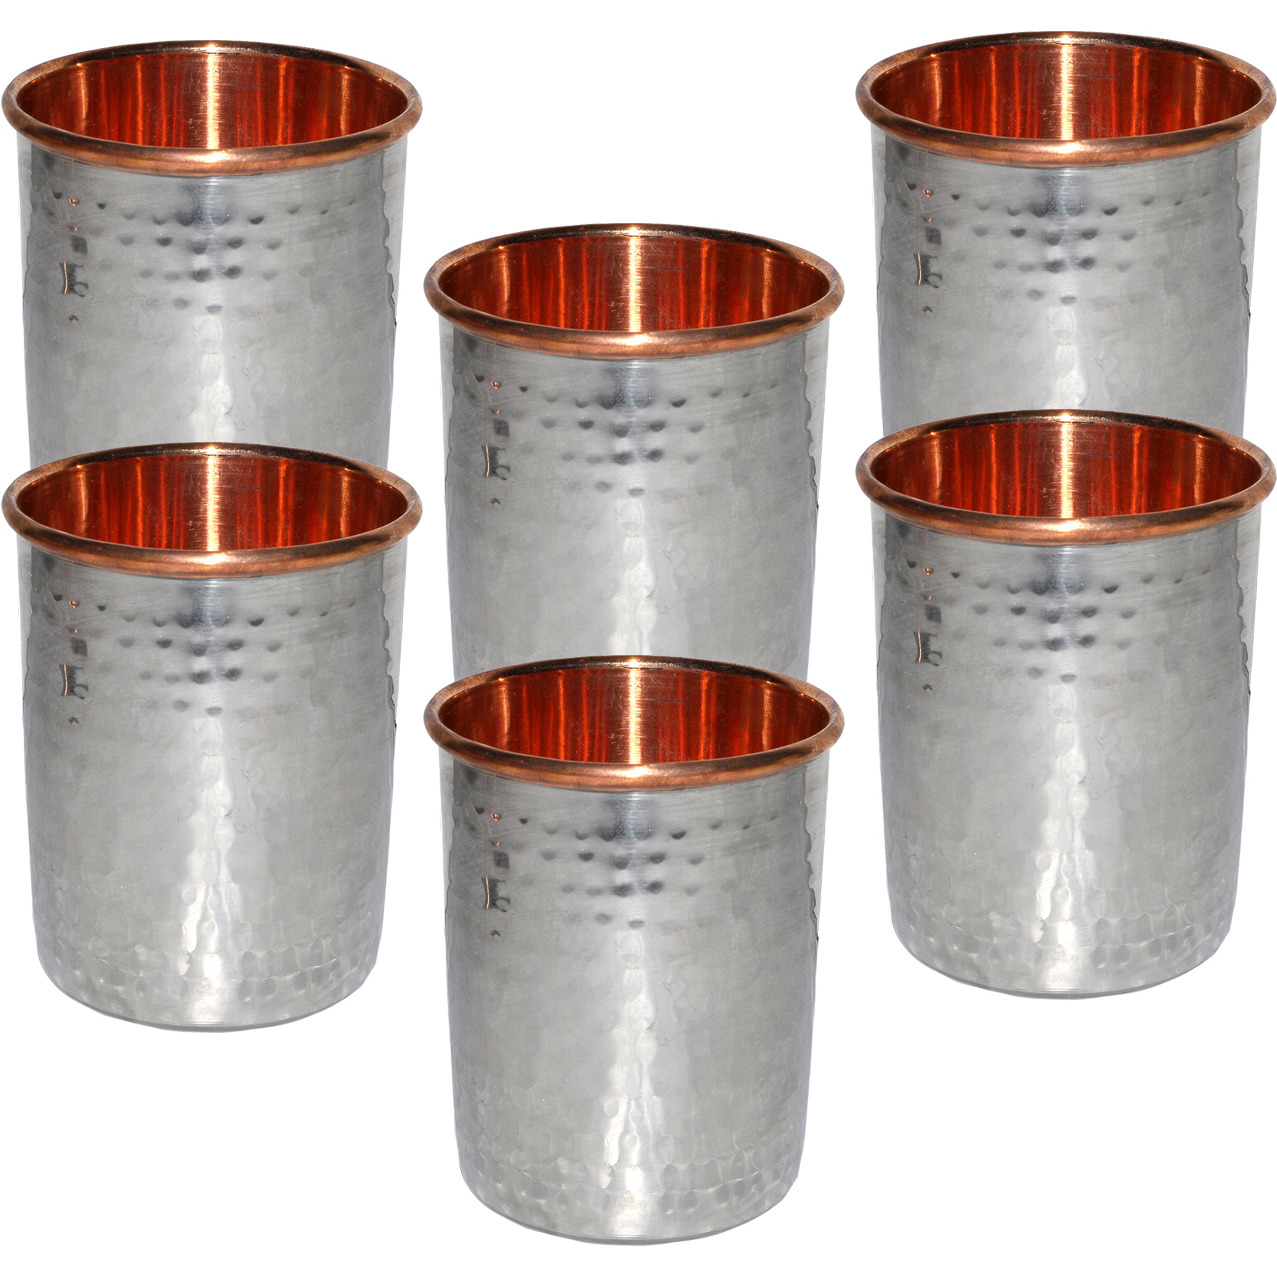 Set of 6 - Prisha India Craft B. Handmade Water Glass Copper Tumbler  Inside Stainless Steel | Traveller's Copper Cup